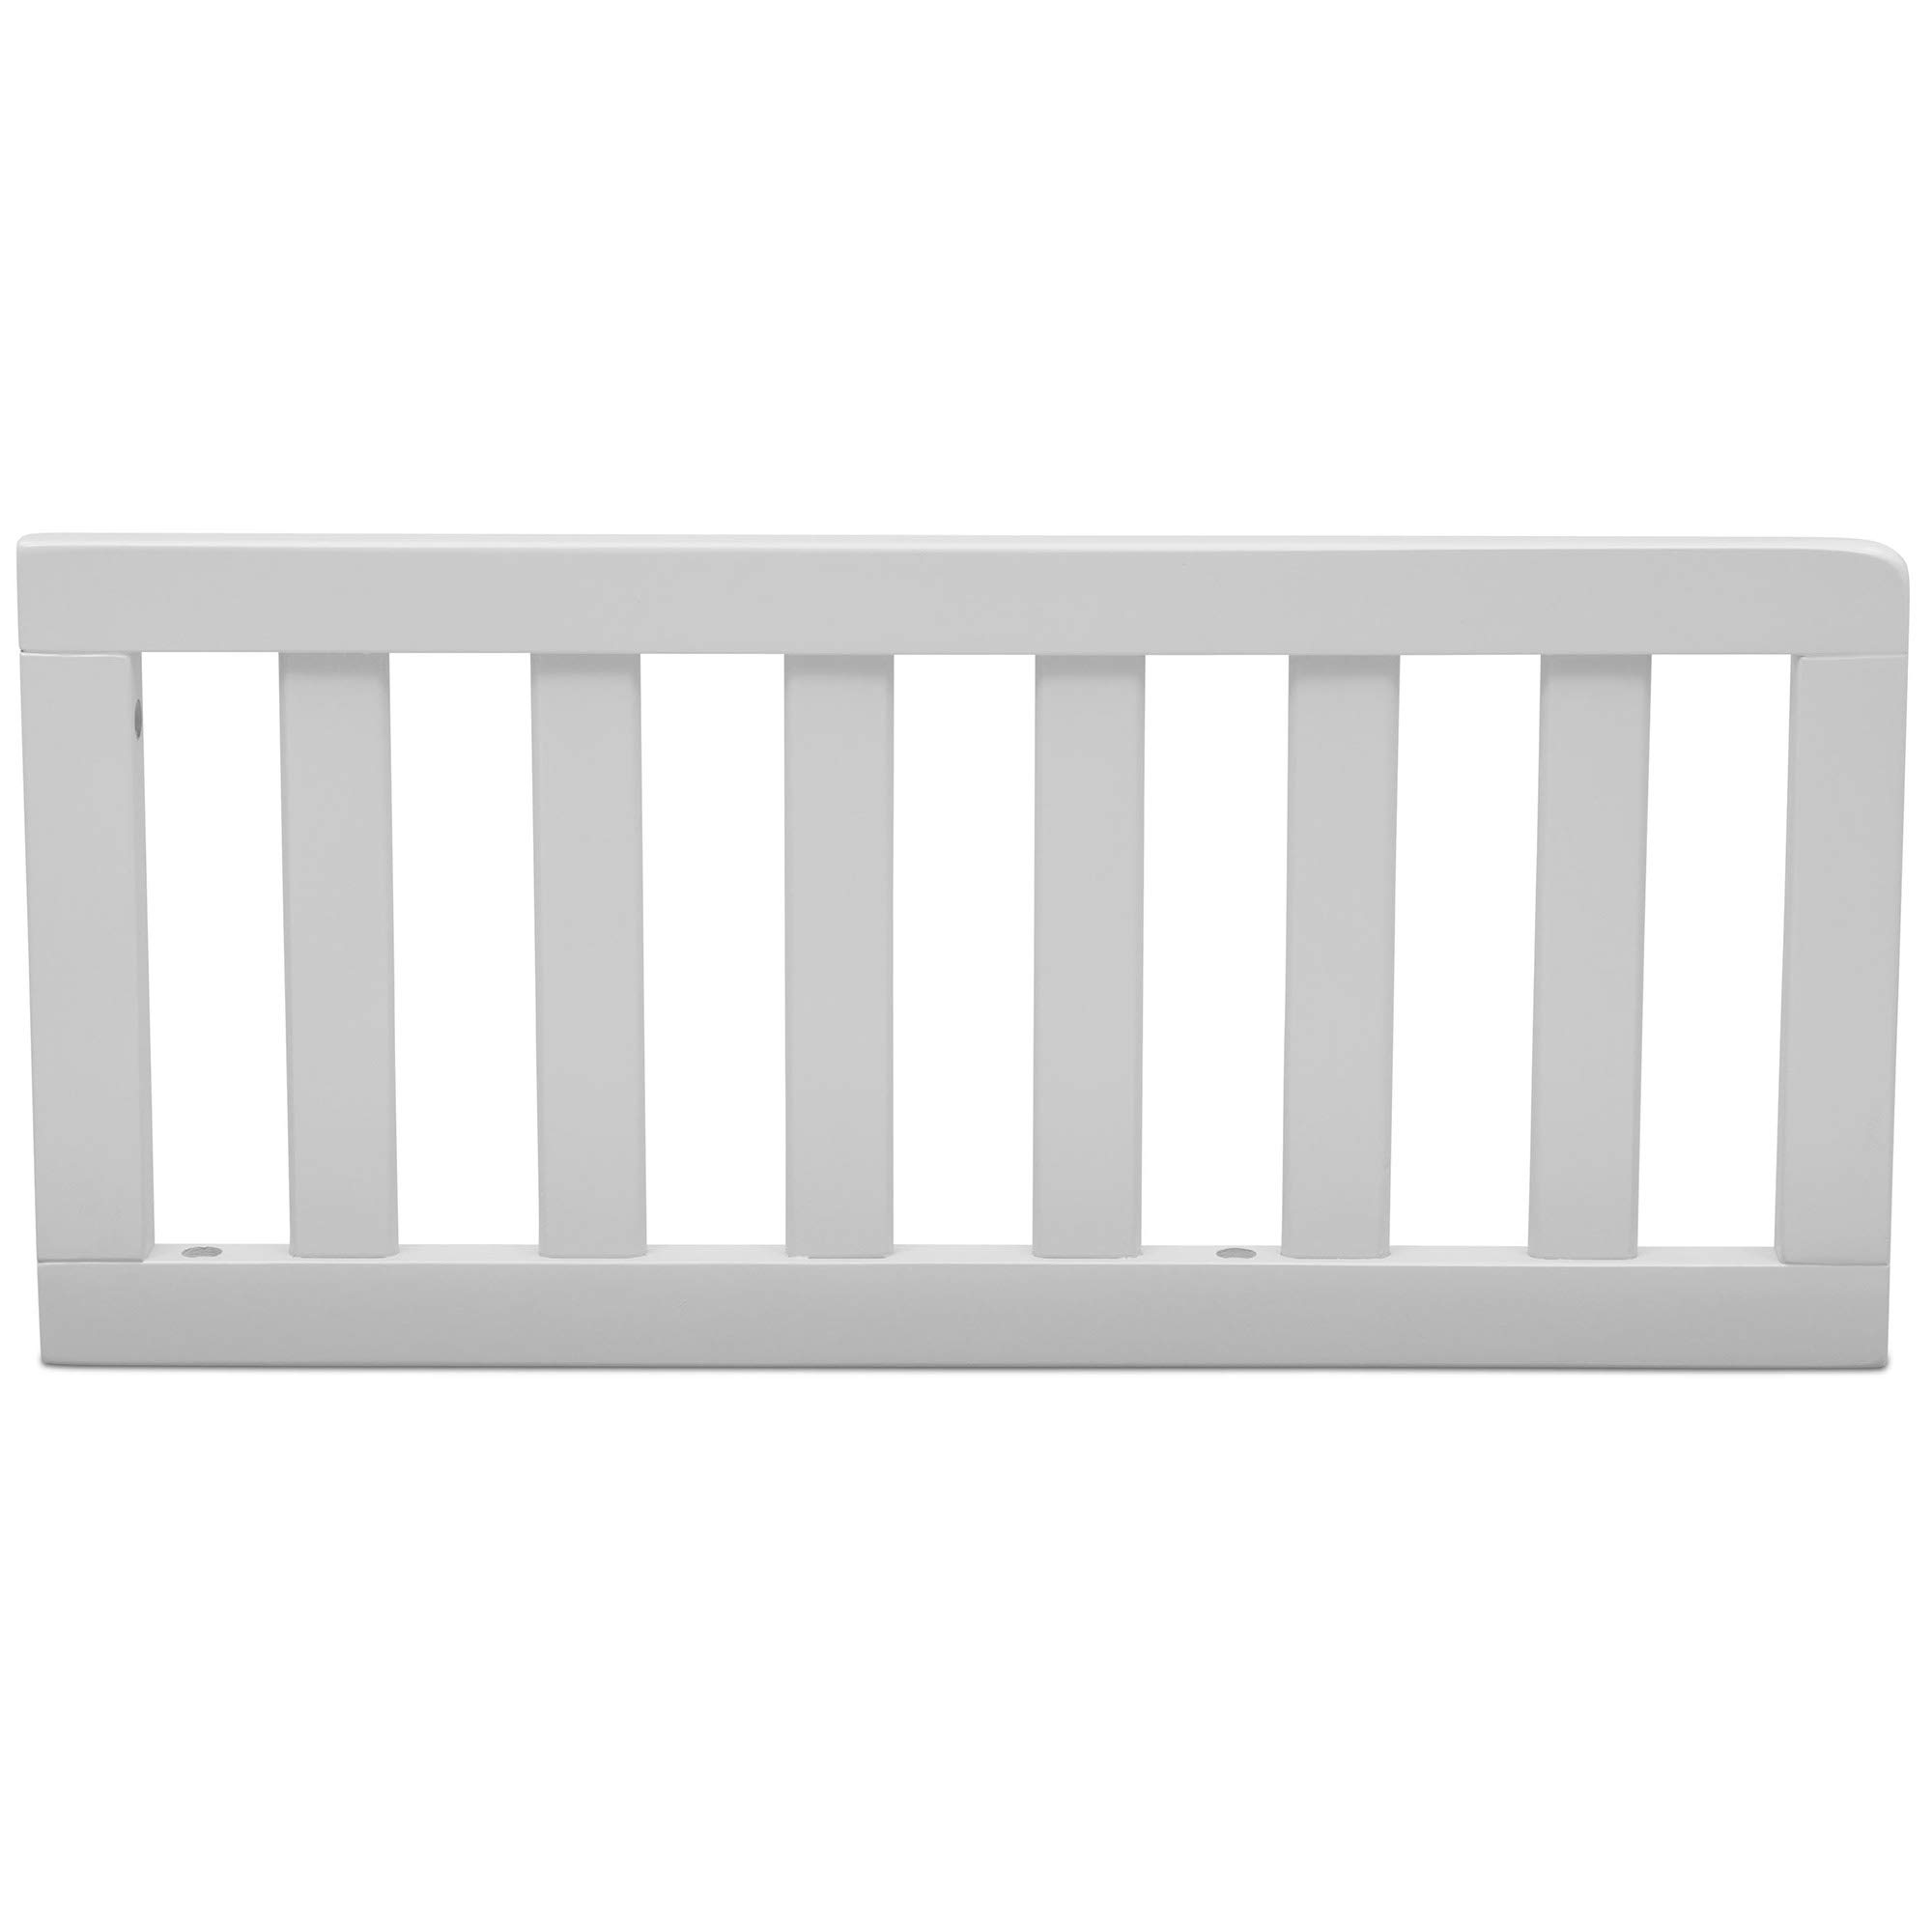 Delta Children Toddler Guardrail #0080, Bianca White by Delta Children